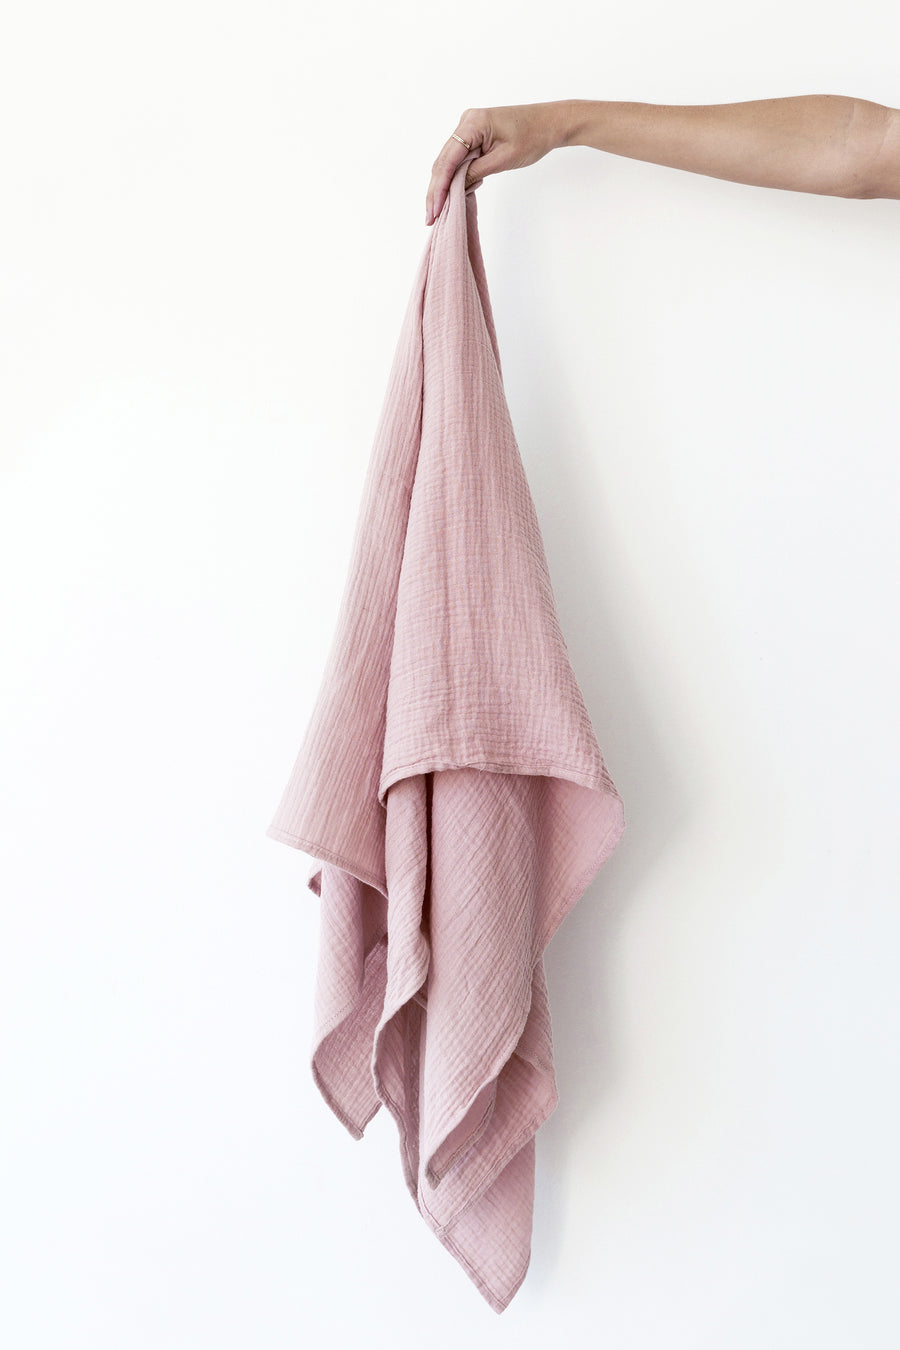 Dusty Pink Muslin Swaddle Blanket